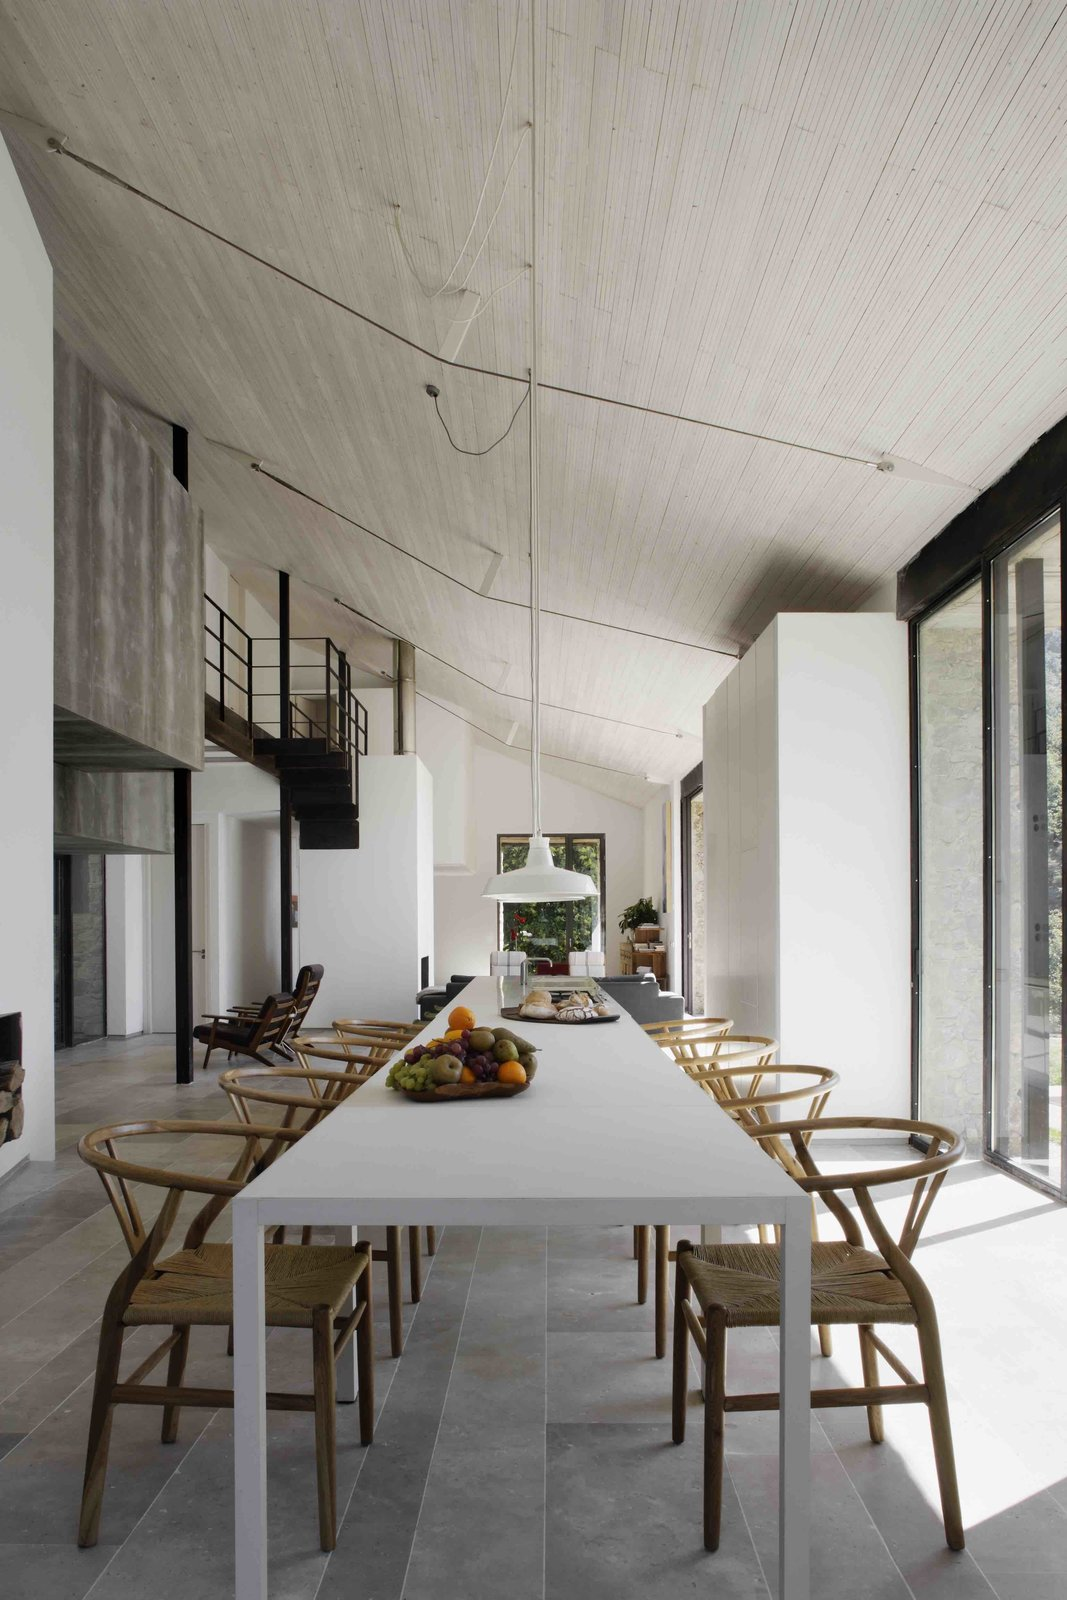 Dining Room, Chair, Table, and Pendant Lighting  Photo 7 of 14 in An Abandoned Stable in Spain Is Transformed Into a Sustainable Vacation Home For Rent